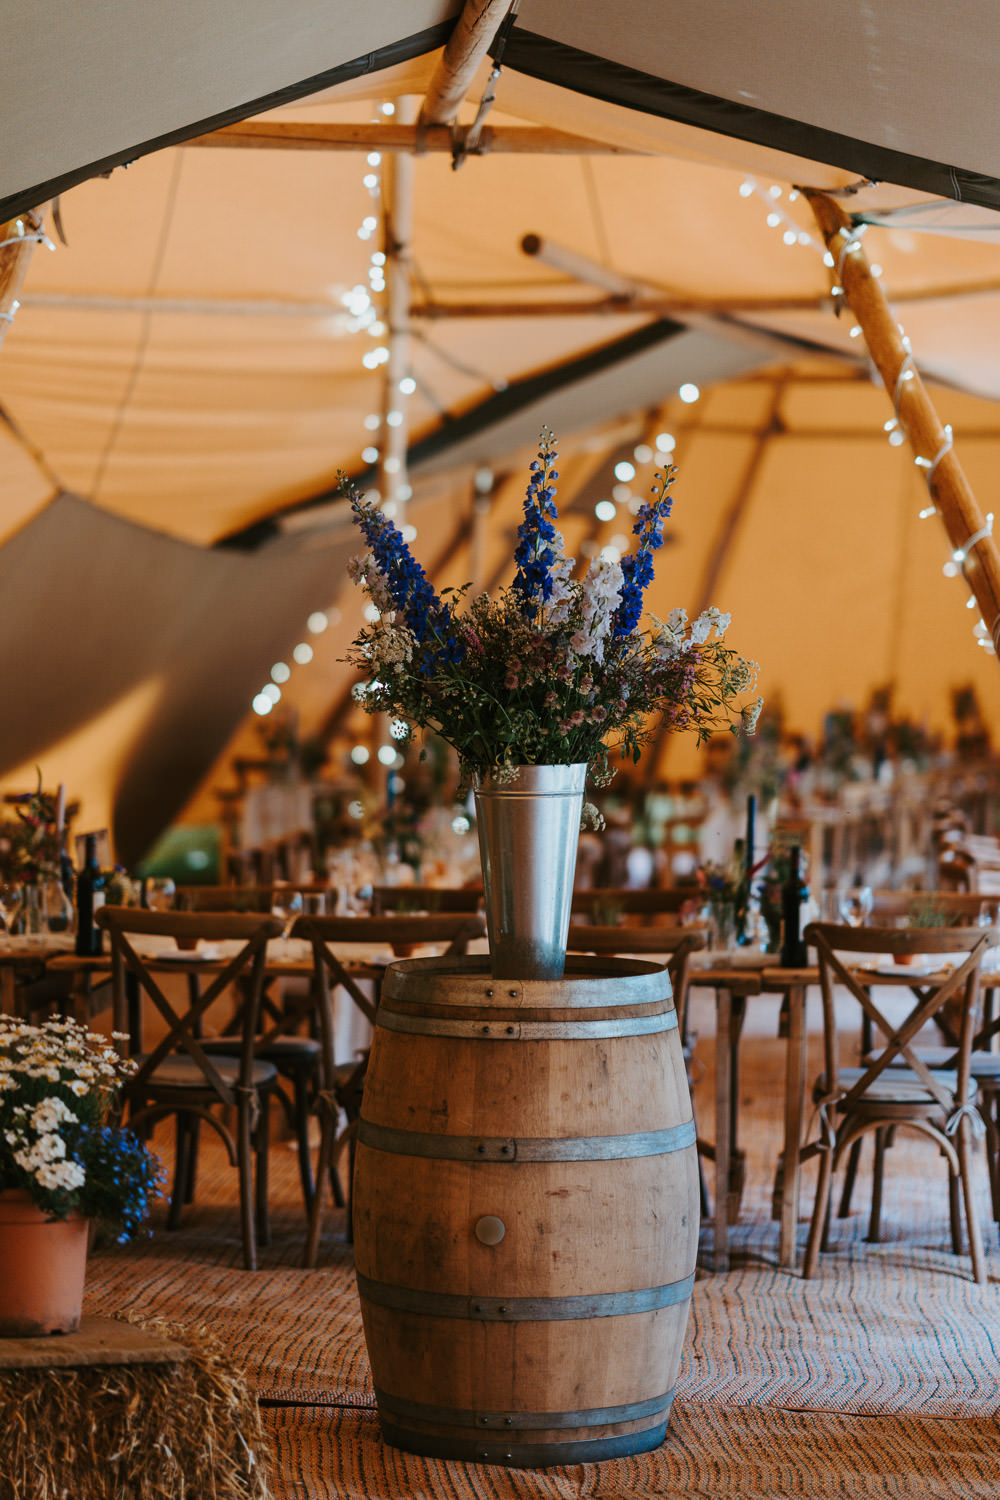 Tipi Wooden Long Tables Fairy Lights Flowers Country Festival Wedding Jonny Gouldstone Photography